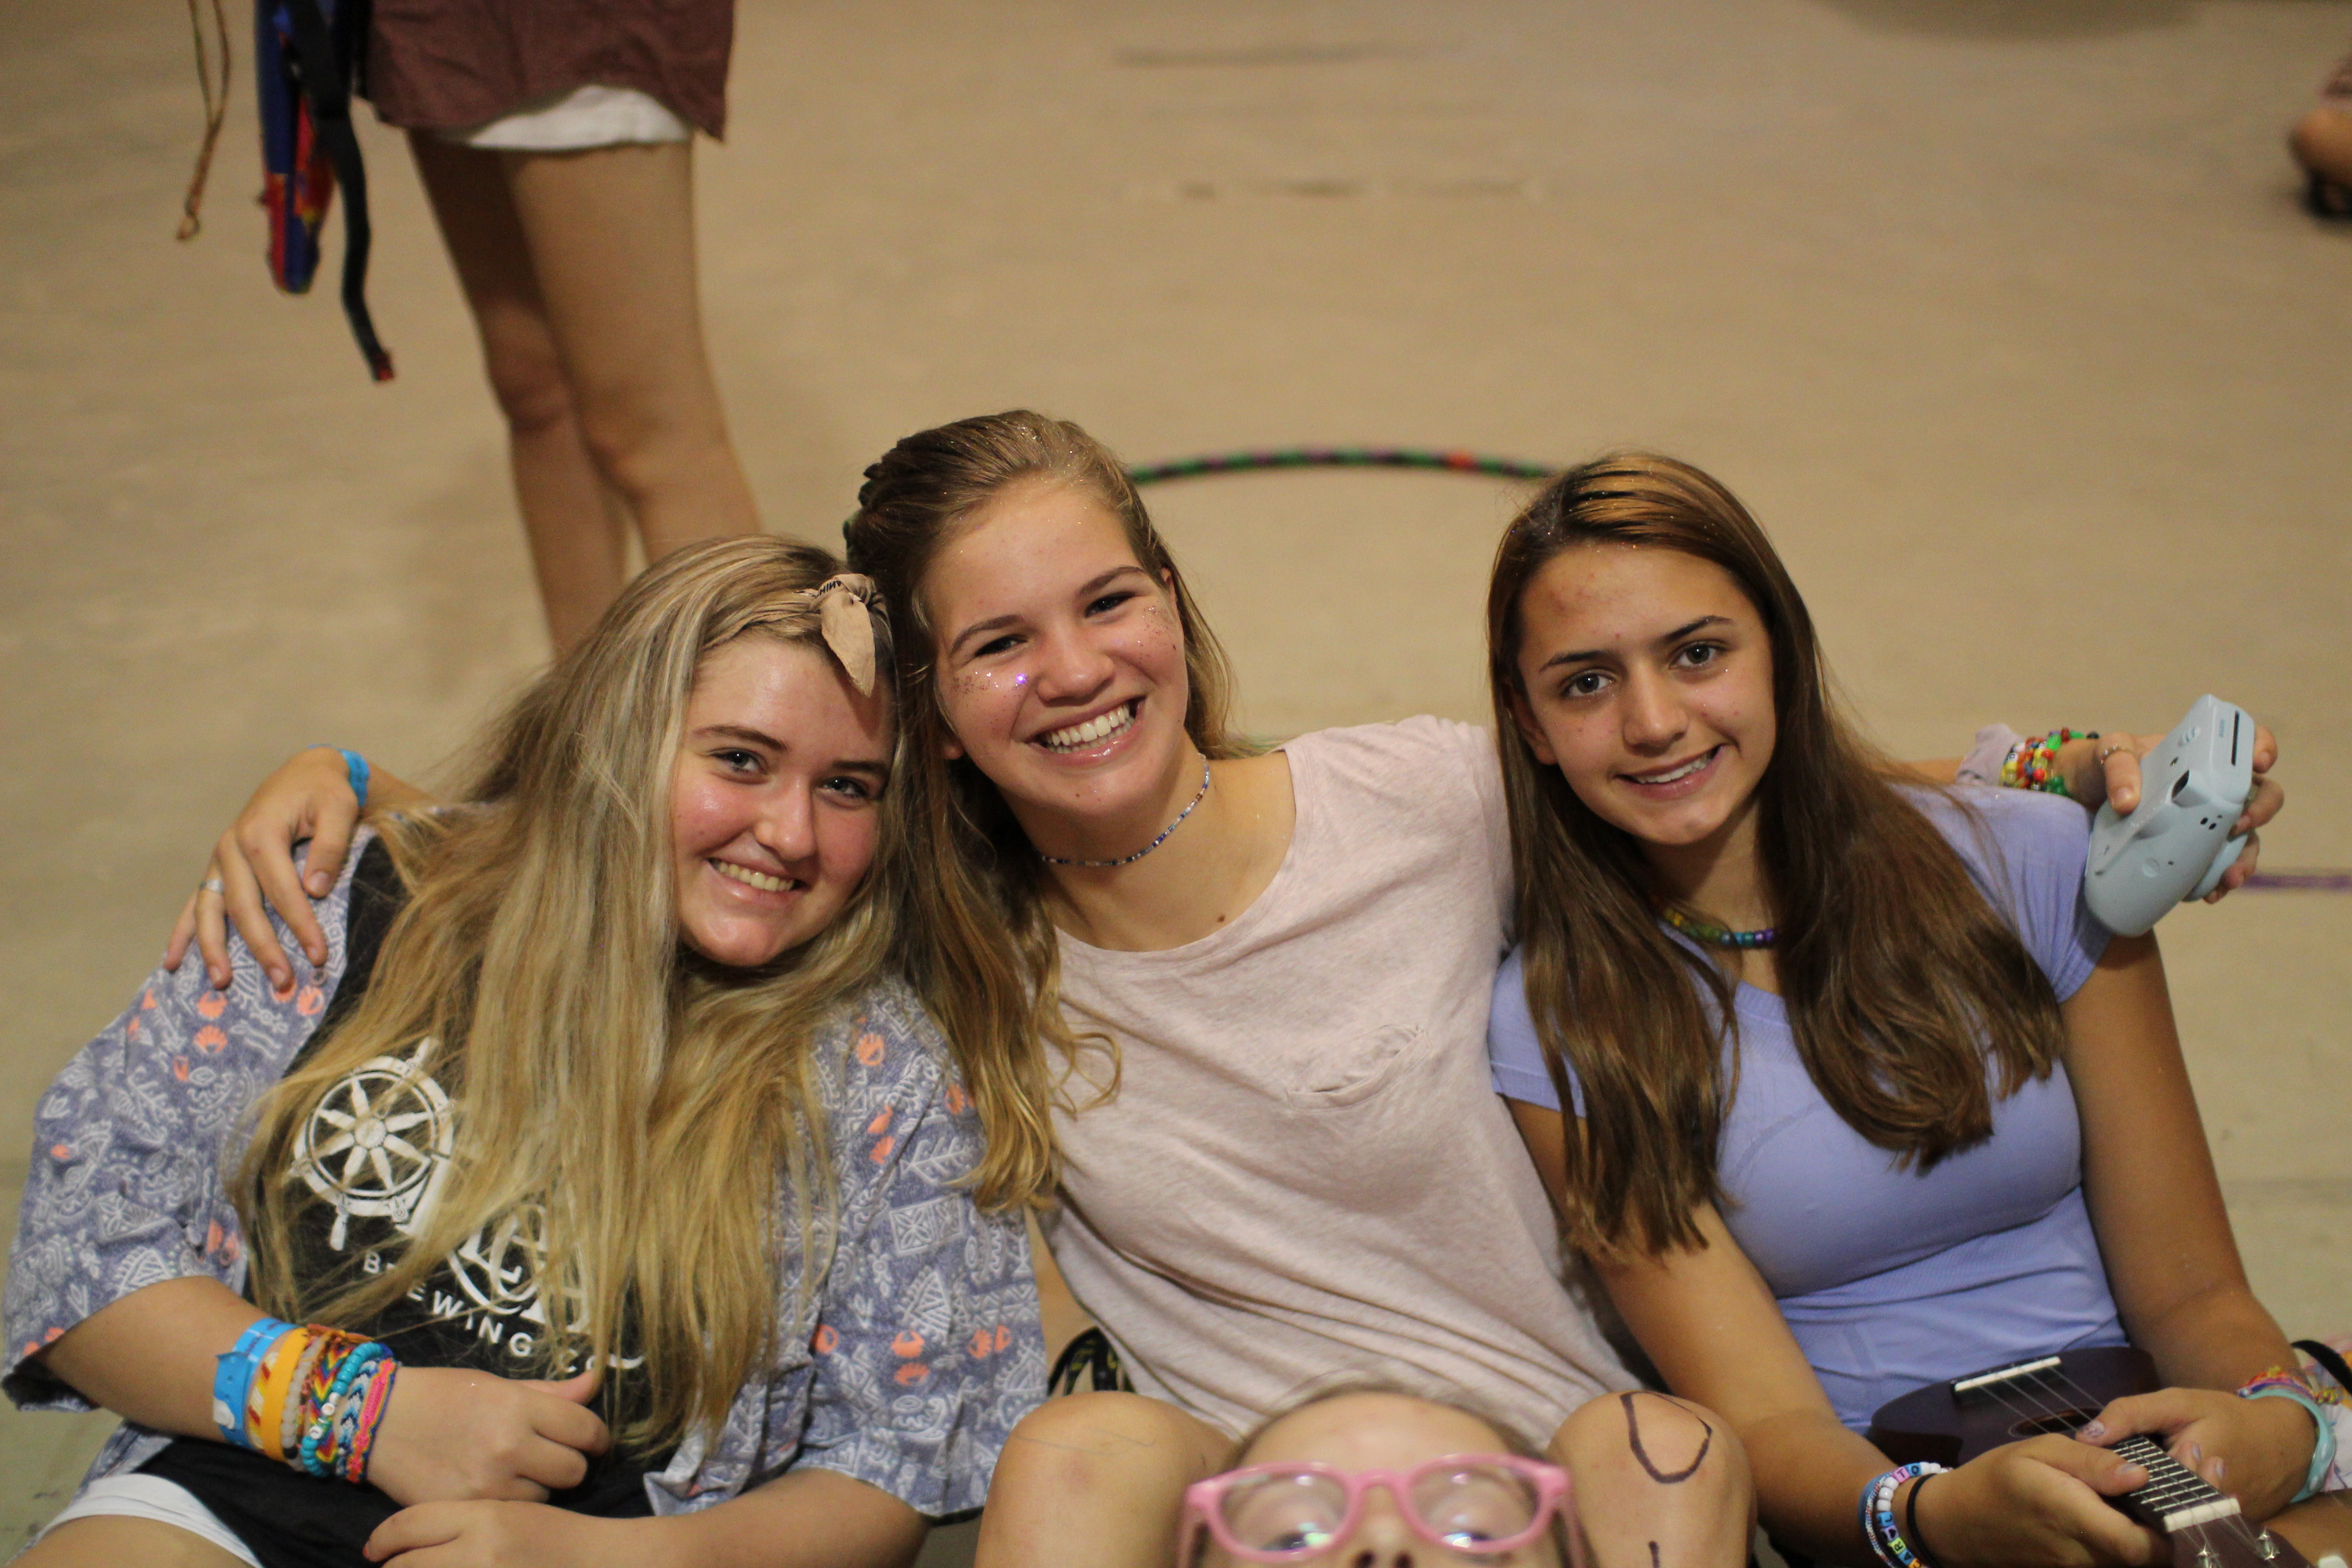 friendships and community at summer camp